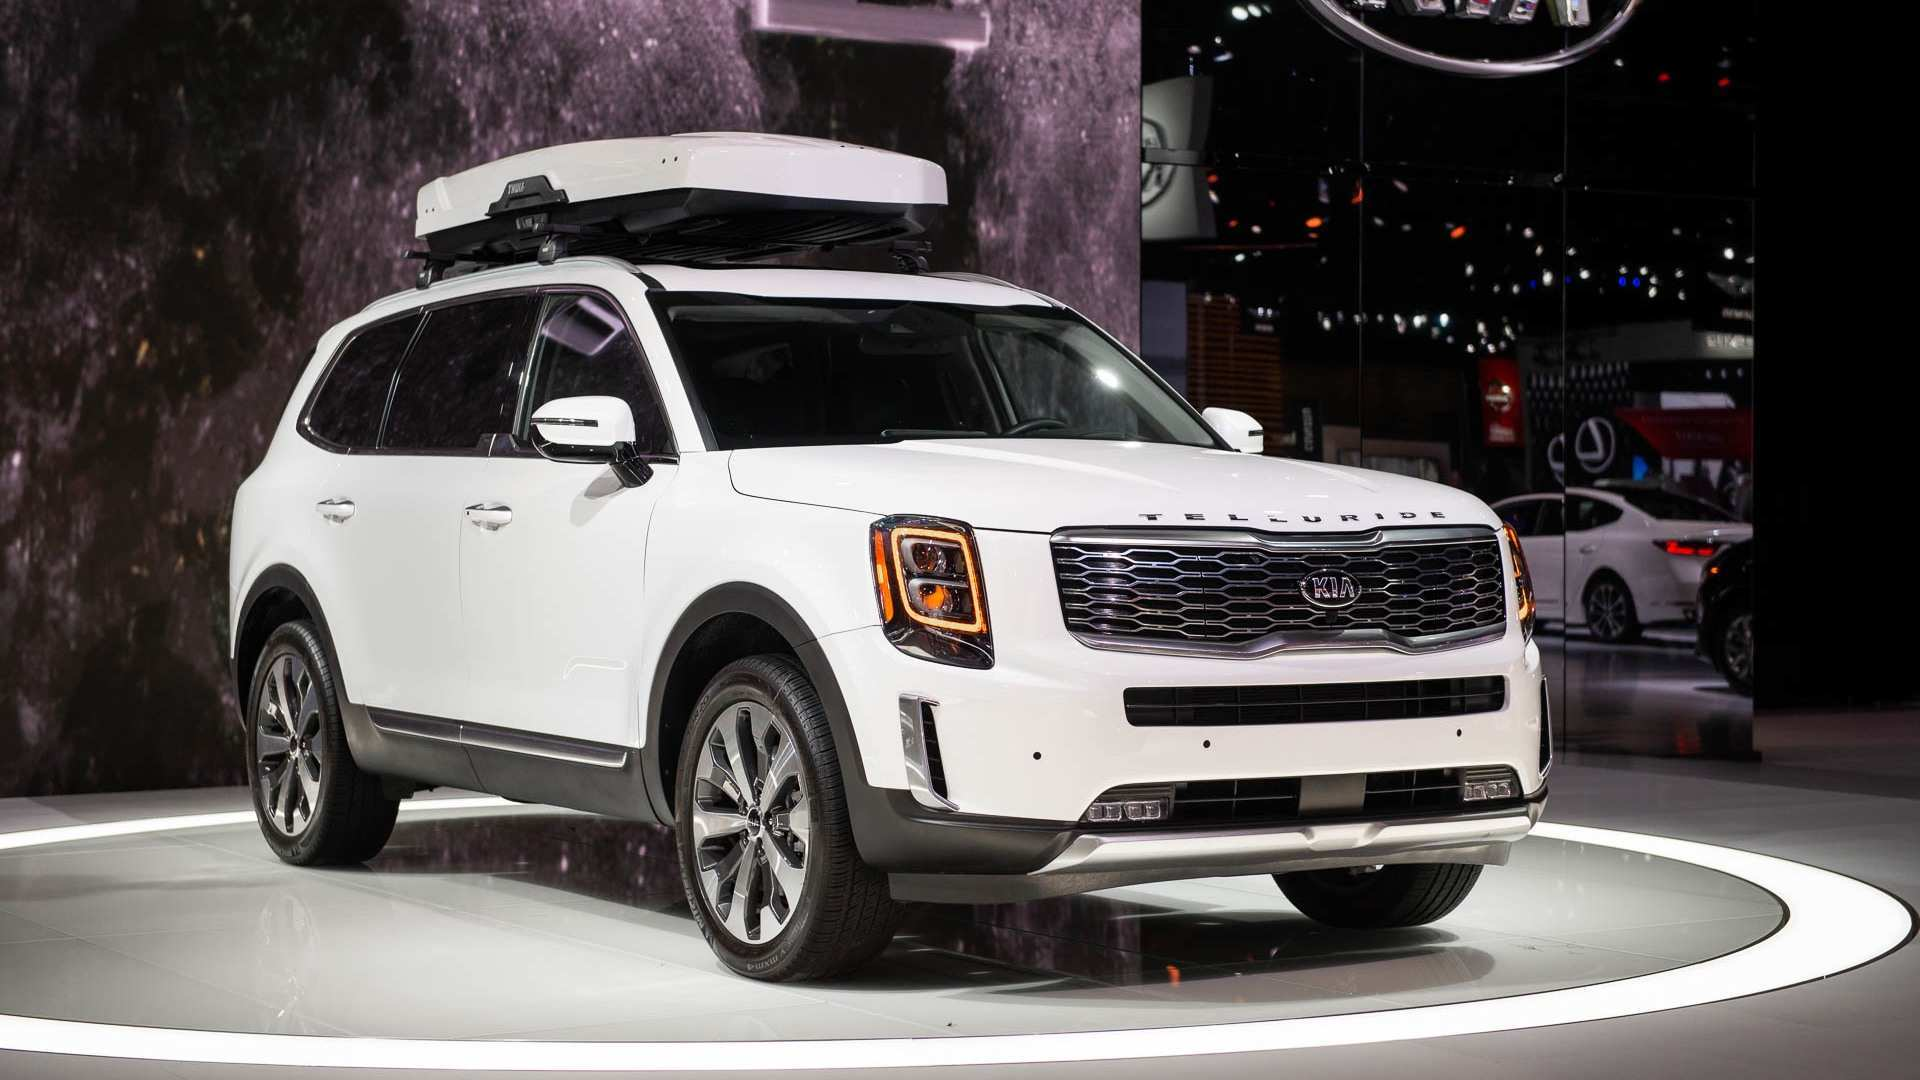 73 Gallery of Kia 2020 Telluride Release Date with Kia 2020 Telluride